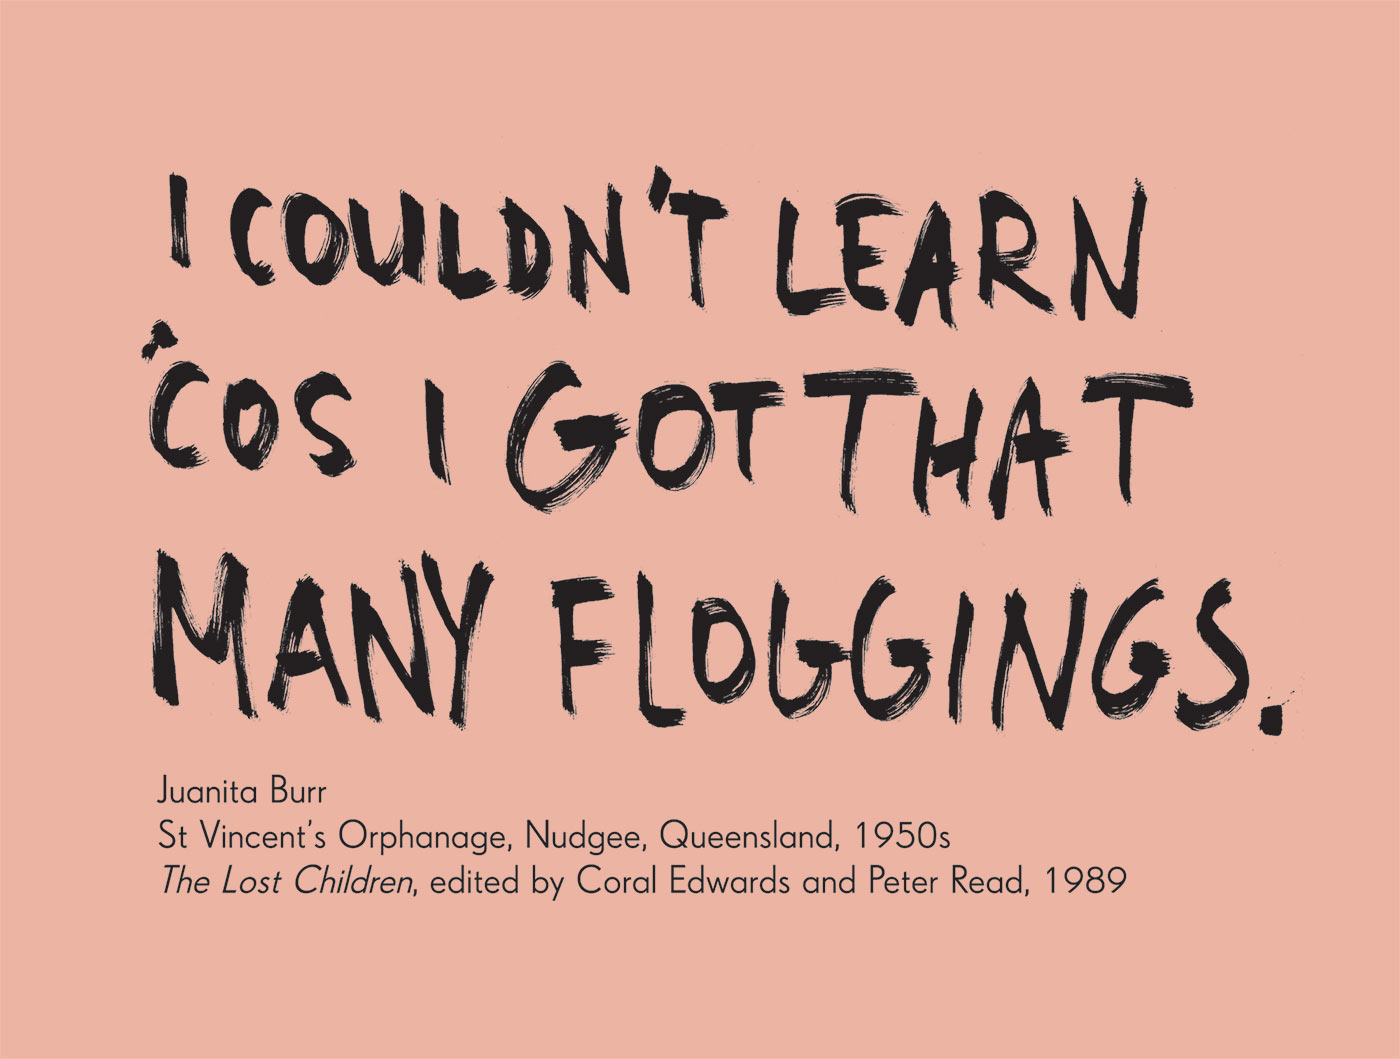 Exhibition graphic panel of black handwritten text in capital letters on a white background reads 'I couldn't learn 'cos I got that many floggings', attributed to 'Juanita Burr, St Vincent's Orphanage, Nudgee, Queensland, 1950s, 'The Lost Children', edited by Coral Edwards and Peter Read, 1989'. - click to view larger image